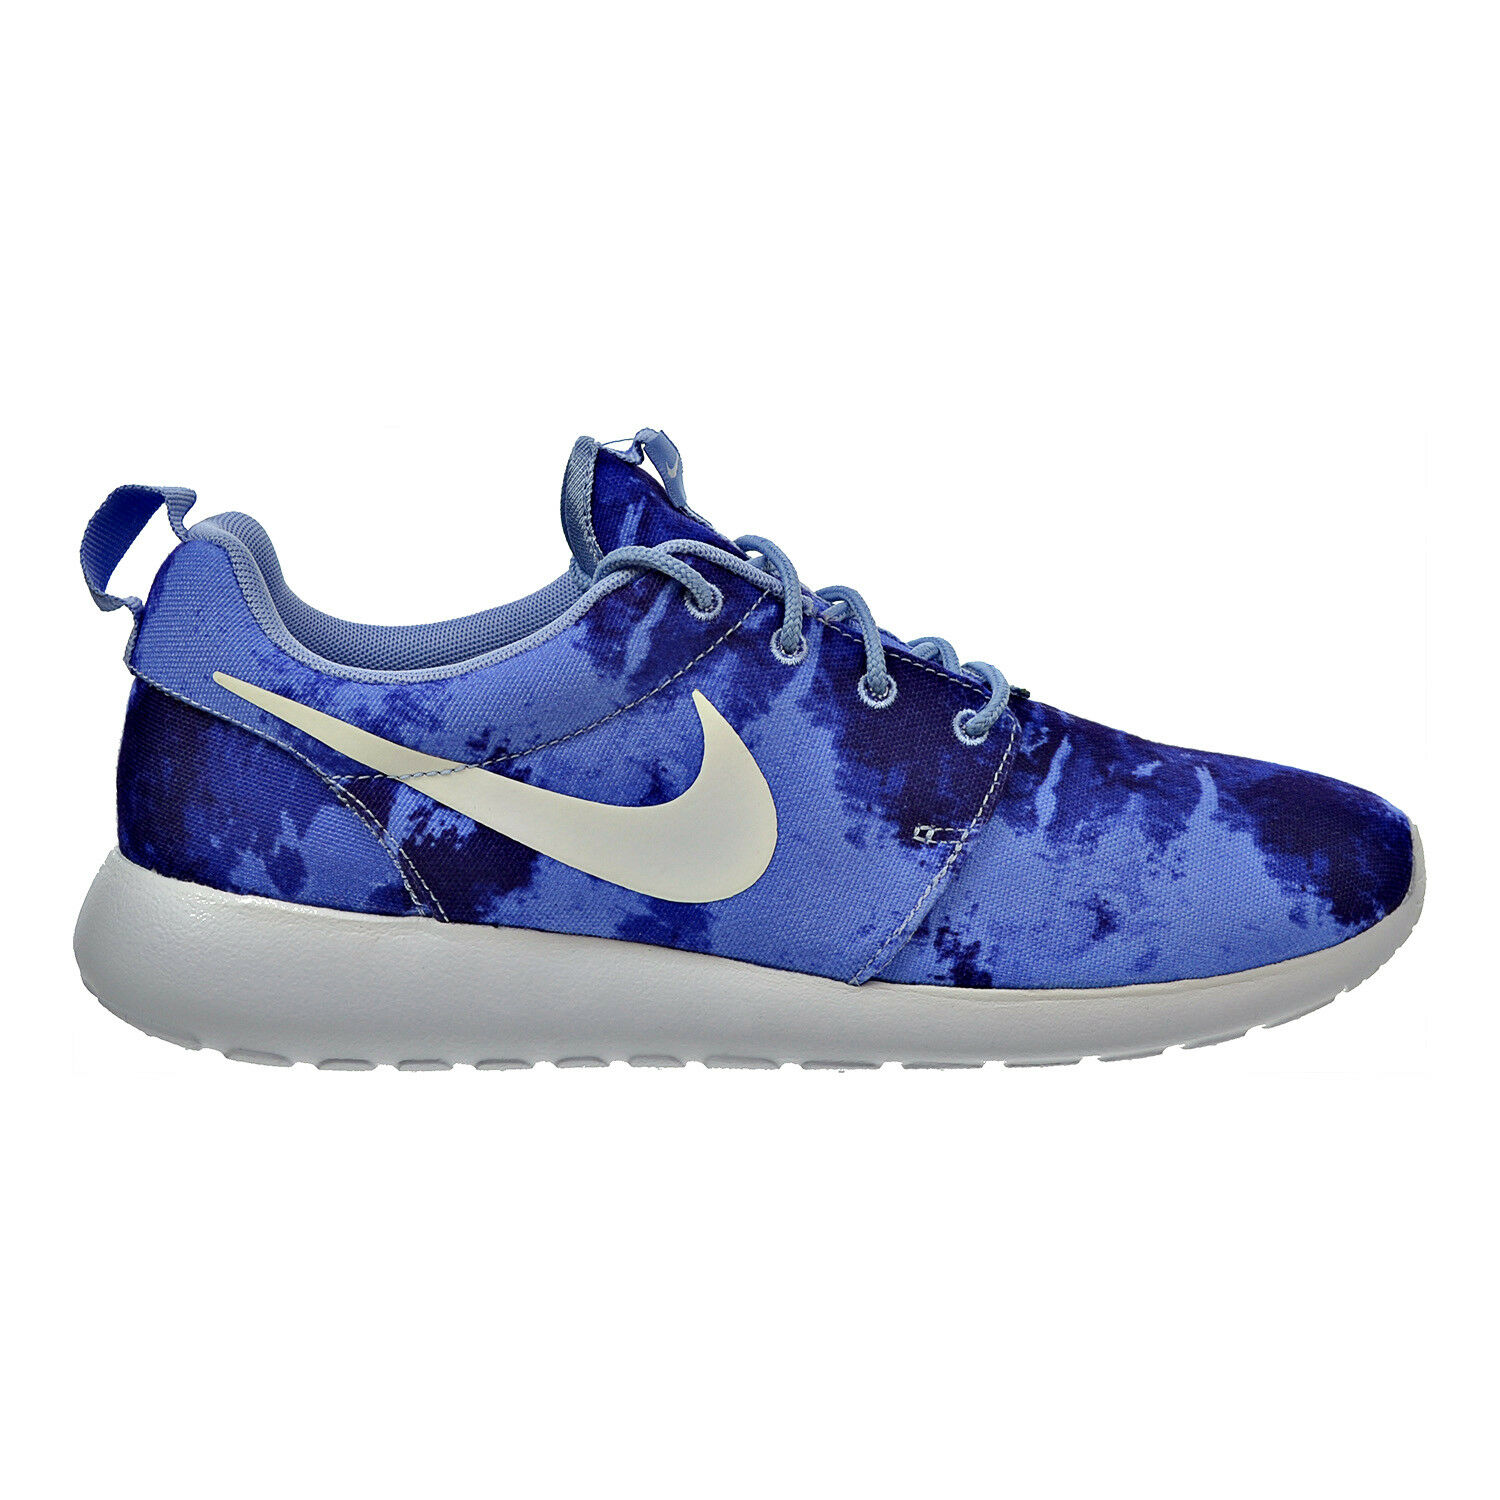 Nike Rosherun Print Men's shoes Aluminum White Persian purple 655206-415